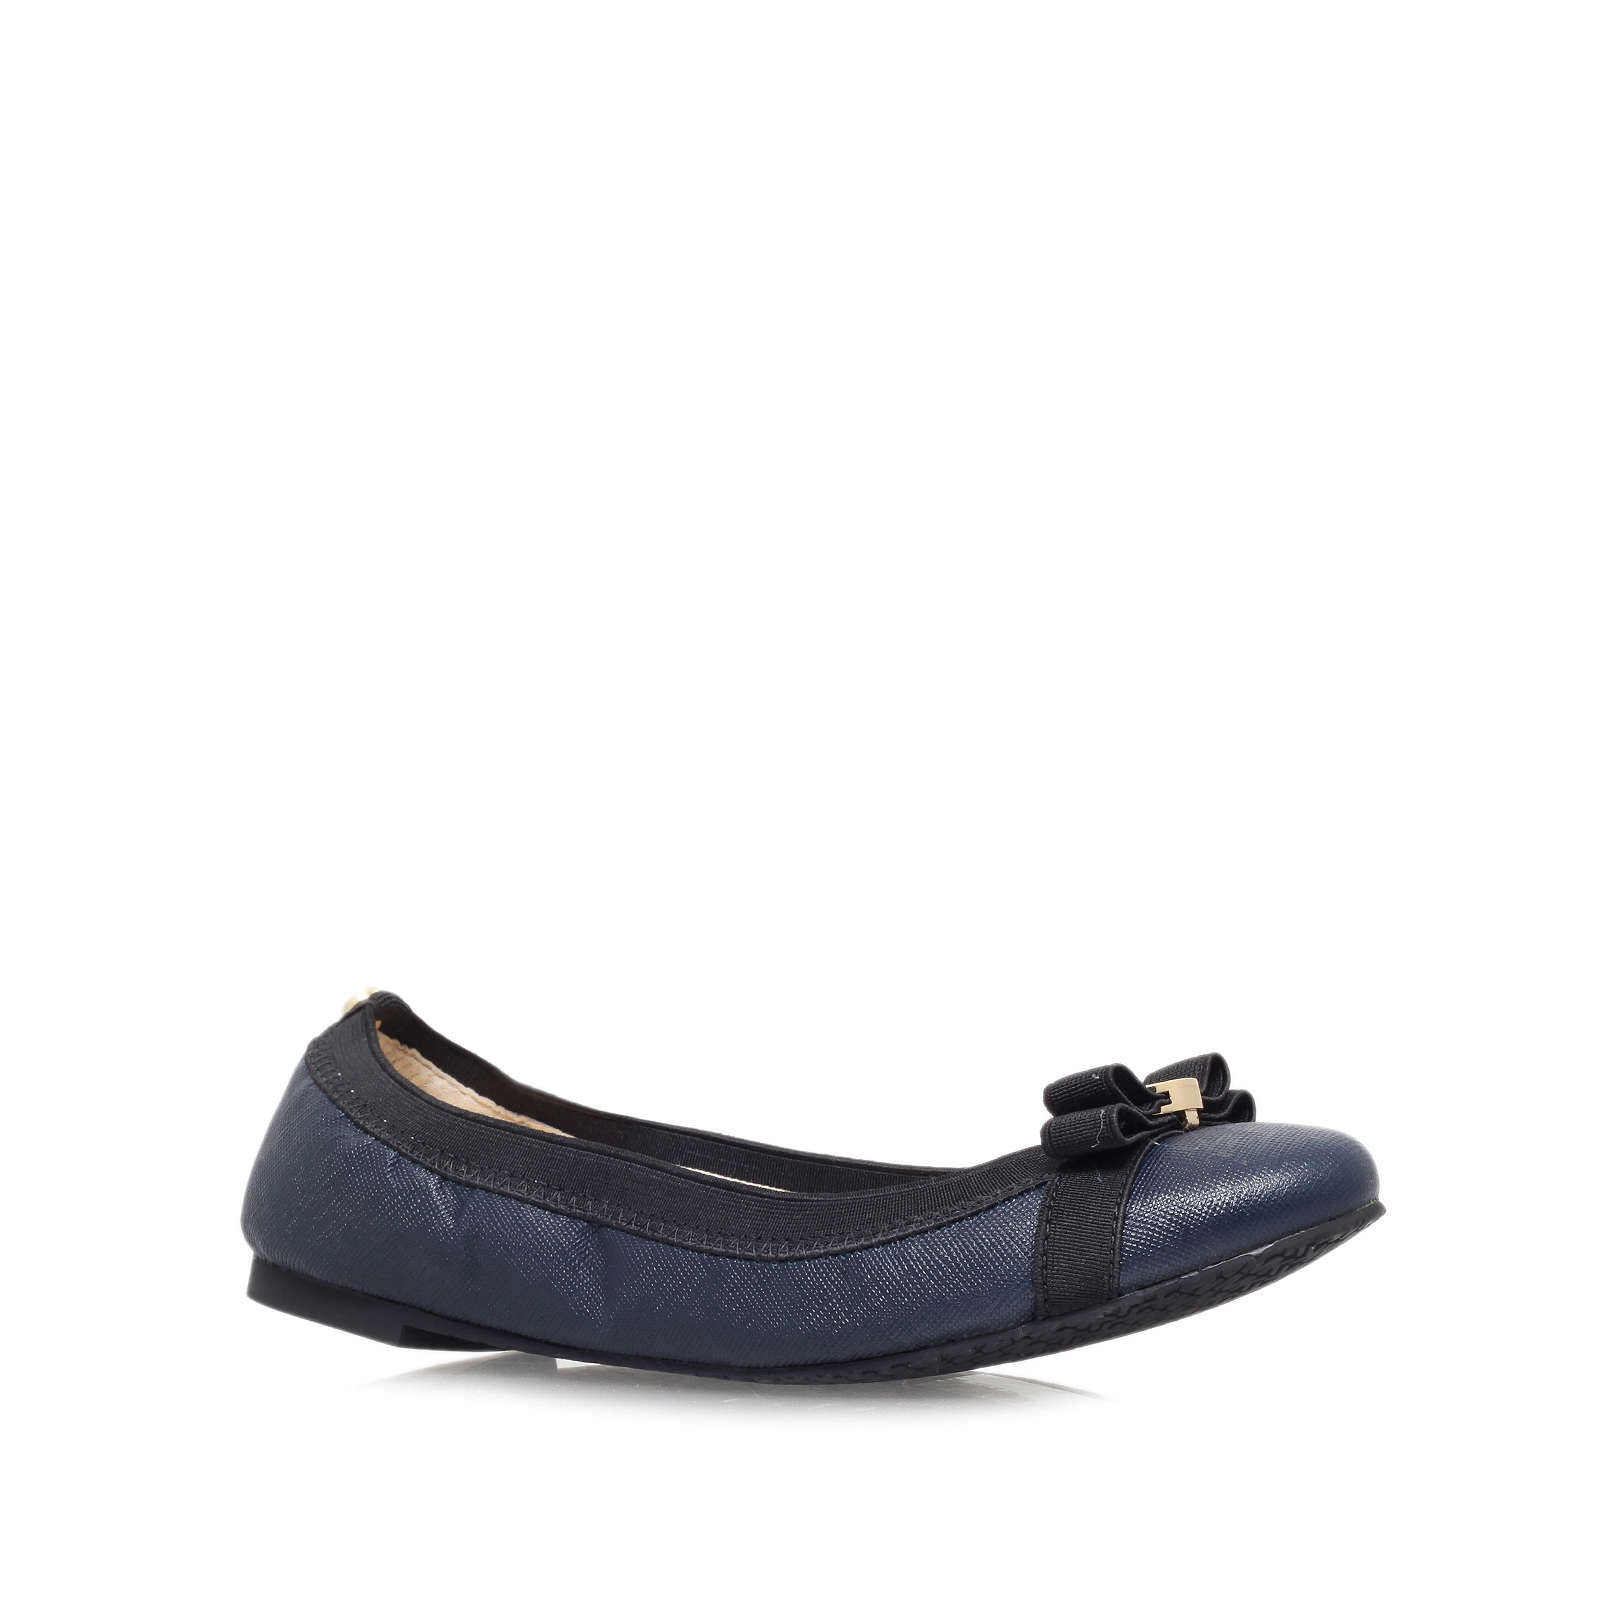 7489dd7ef744 DIXIE BALLET Michael Michael Kors Dixie Ballet Navy Leather Flats by MICHAEL  MICHAEL KORS